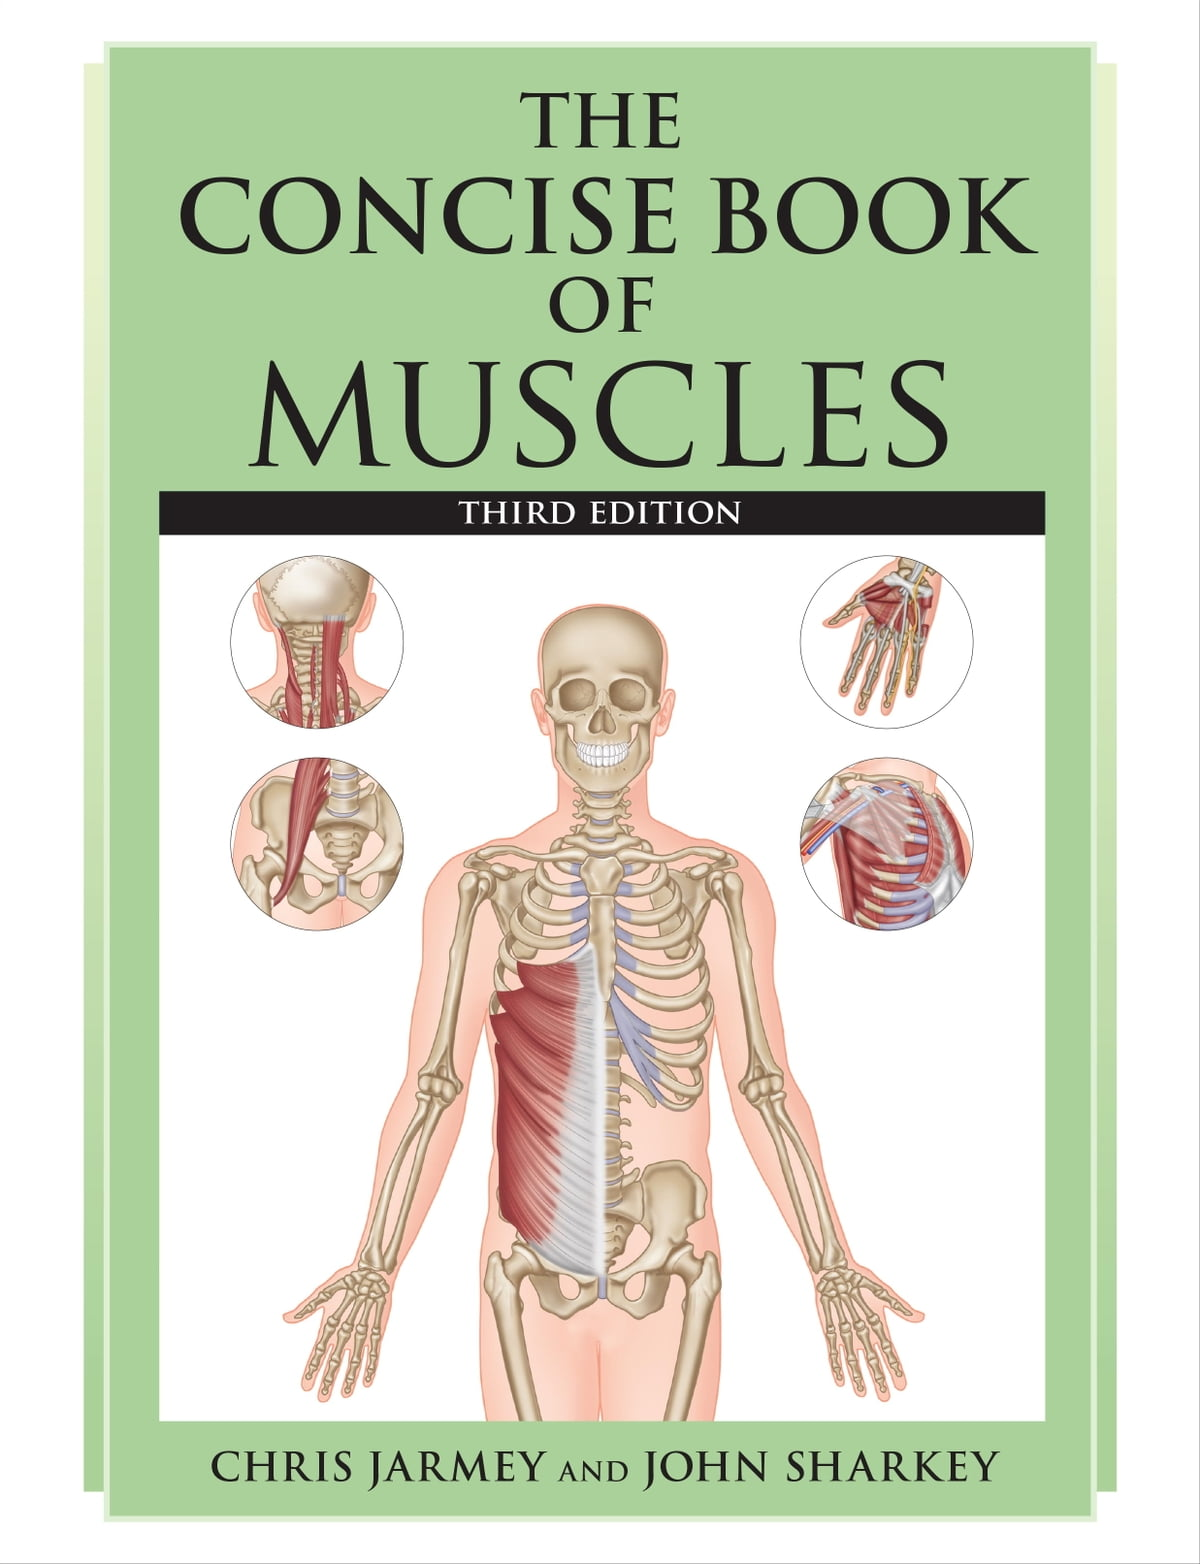 The Concise Book of Muscles, Third Edition eBook by Chris Jarmey ...